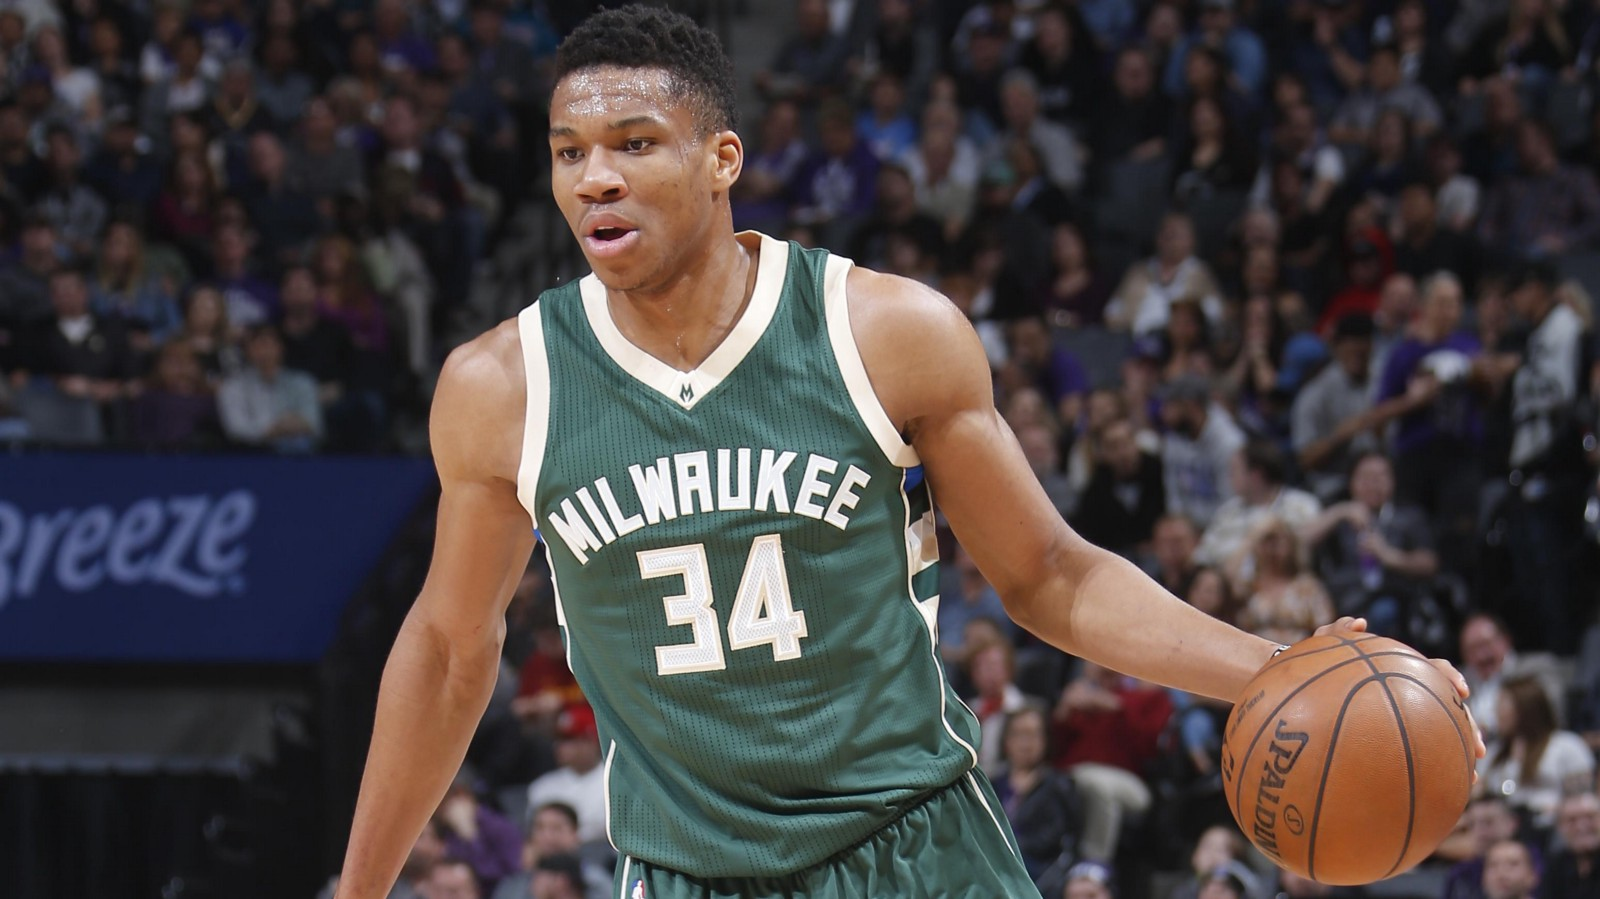 Basketball Players: What Can Giannis Antetokounmpo Do With His Hands?